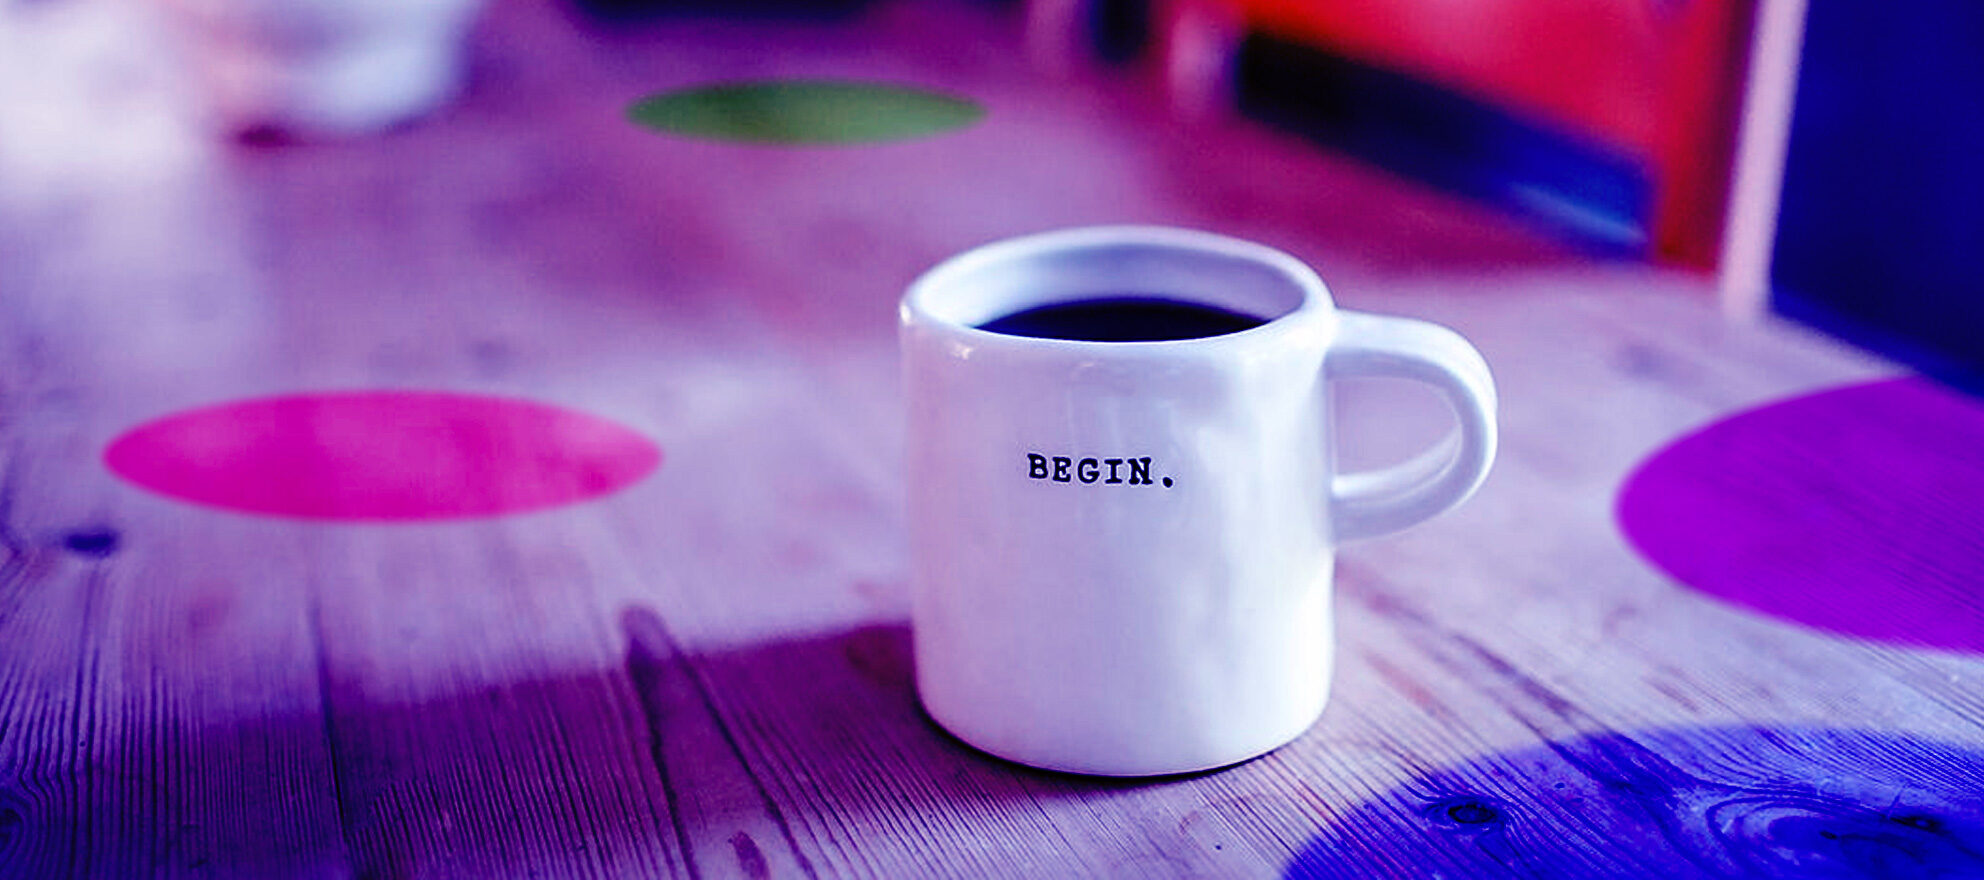 7 morning habits that'll set you up for a productive day